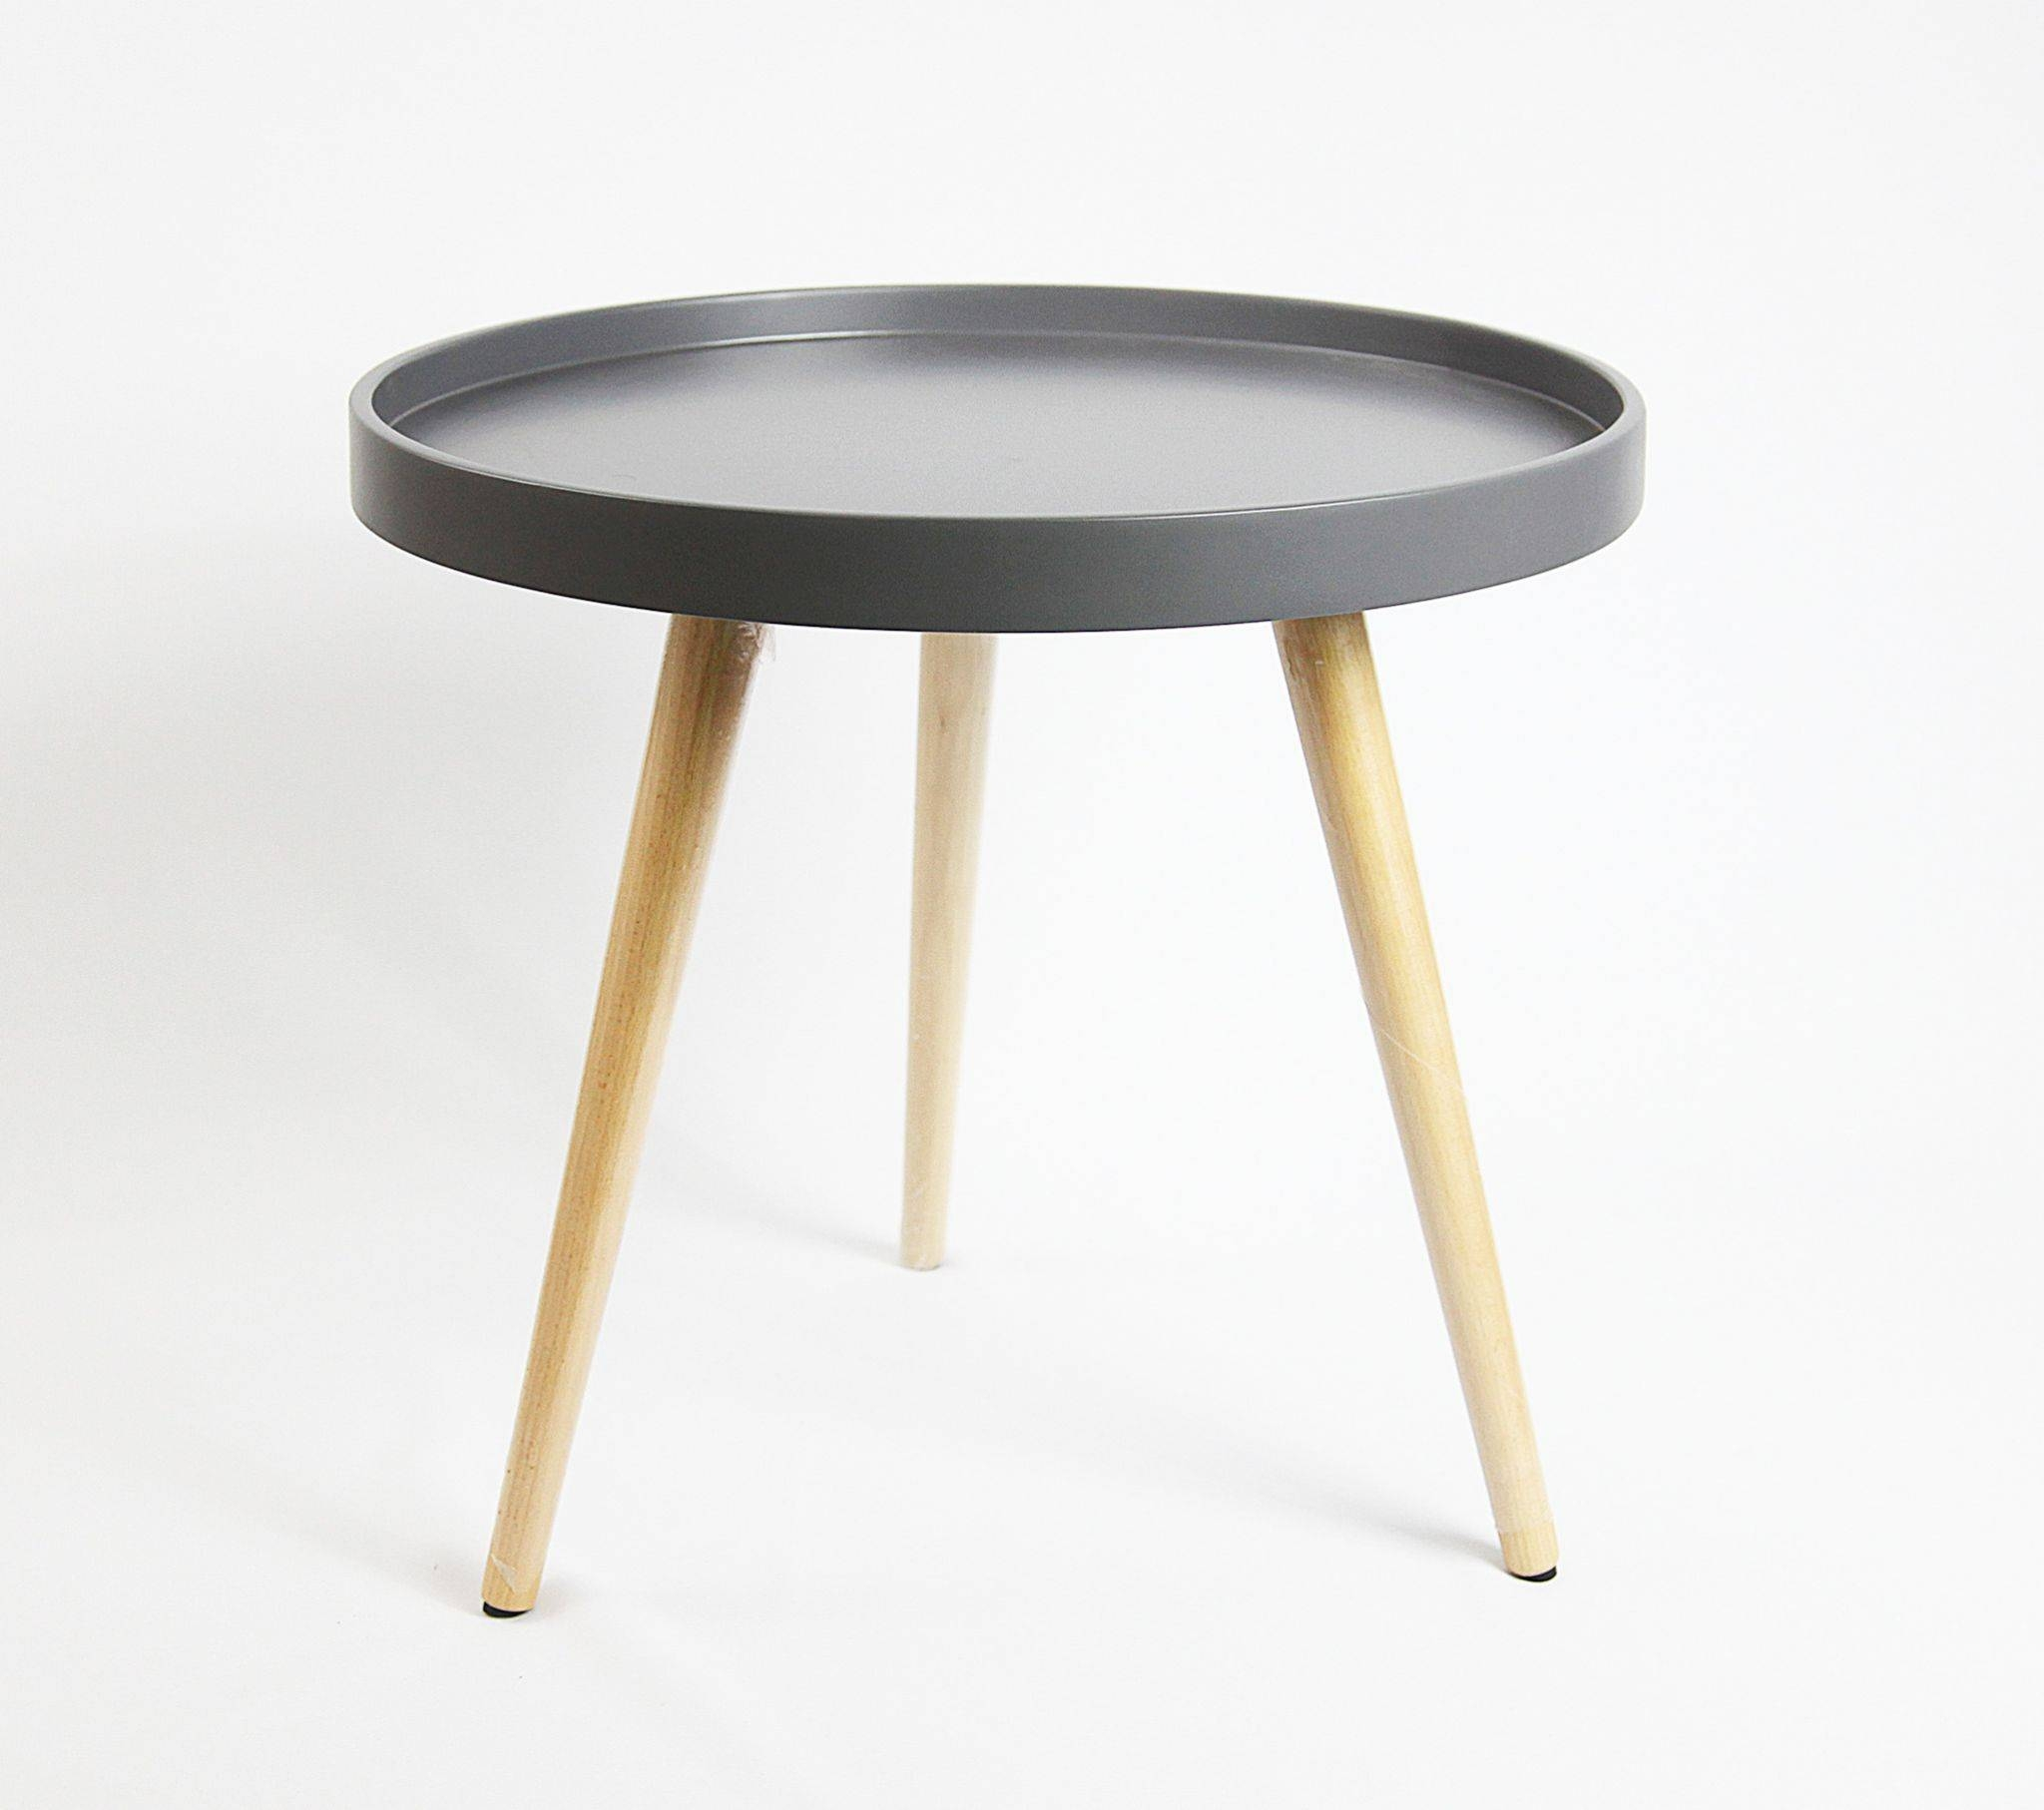 Capri Round Tray Table In 50Cm - Grey Matt with regard to Round Tray Coffee Tables (Image 6 of 30)